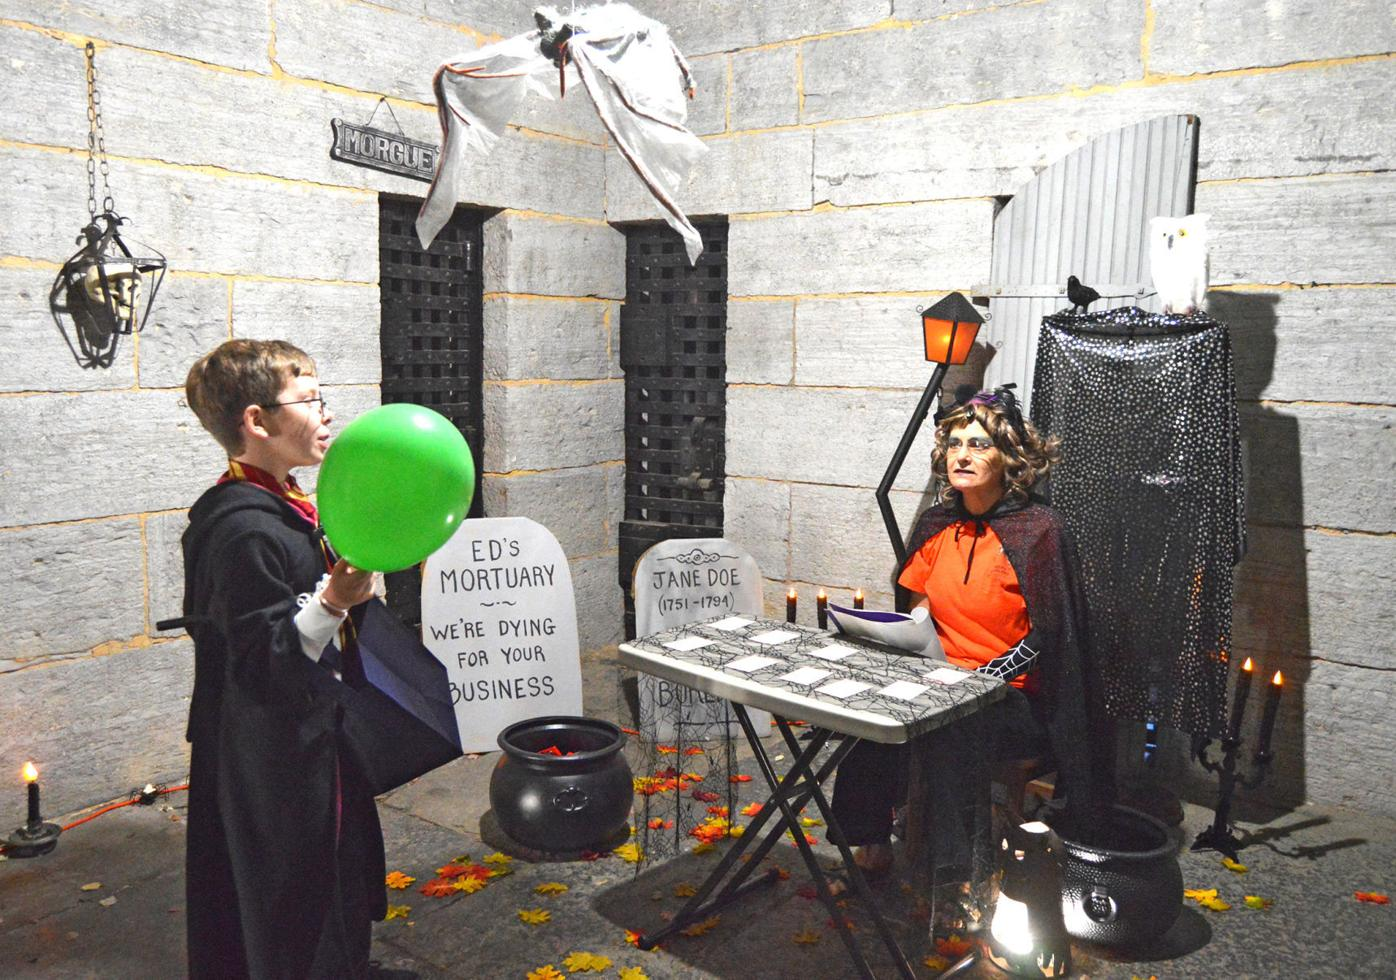 Harry Greeneville Tn Halloween 2020 Tricks, Treats And Lots Of Sweets | Local News | greenevillesun.com